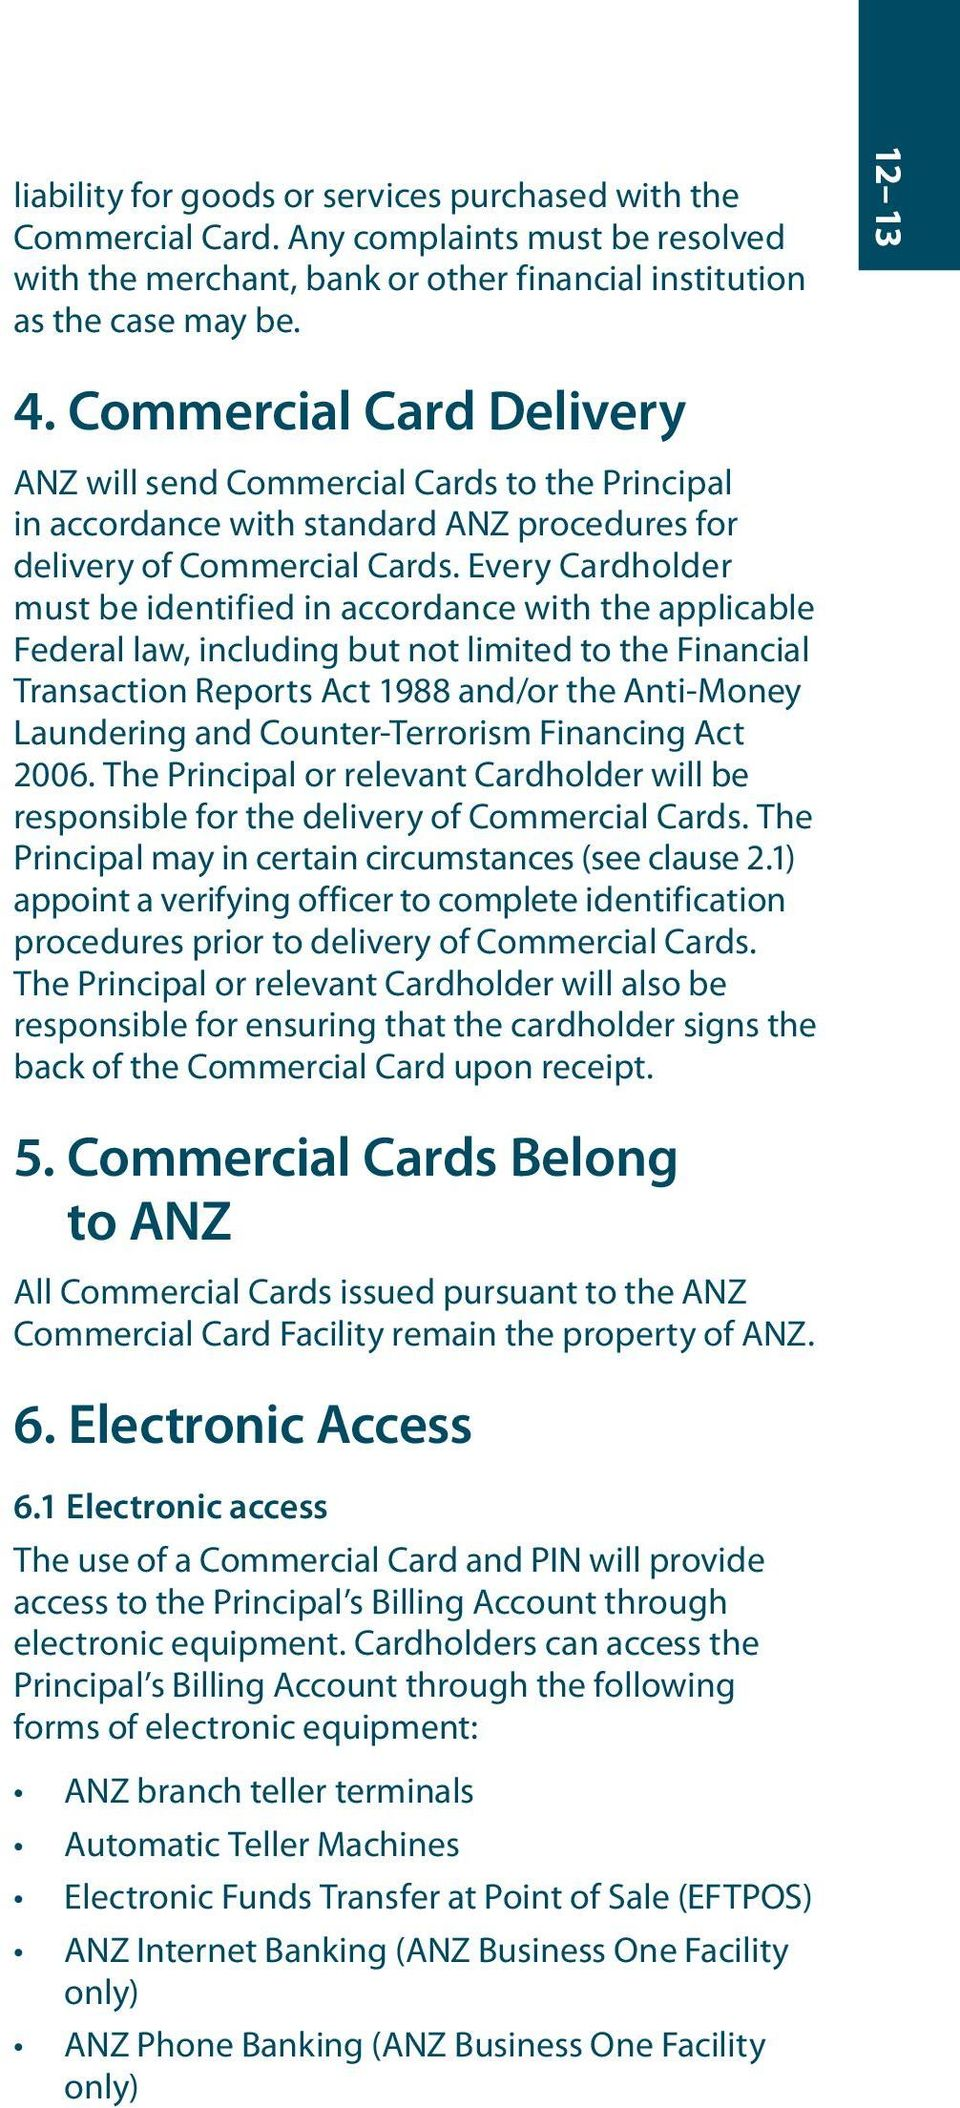 Every Cardholder must be identified in accordance with the applicable Federal law, including but not limited to the Financial Transaction Reports Act 1988 and/or the Anti-Money Laundering and